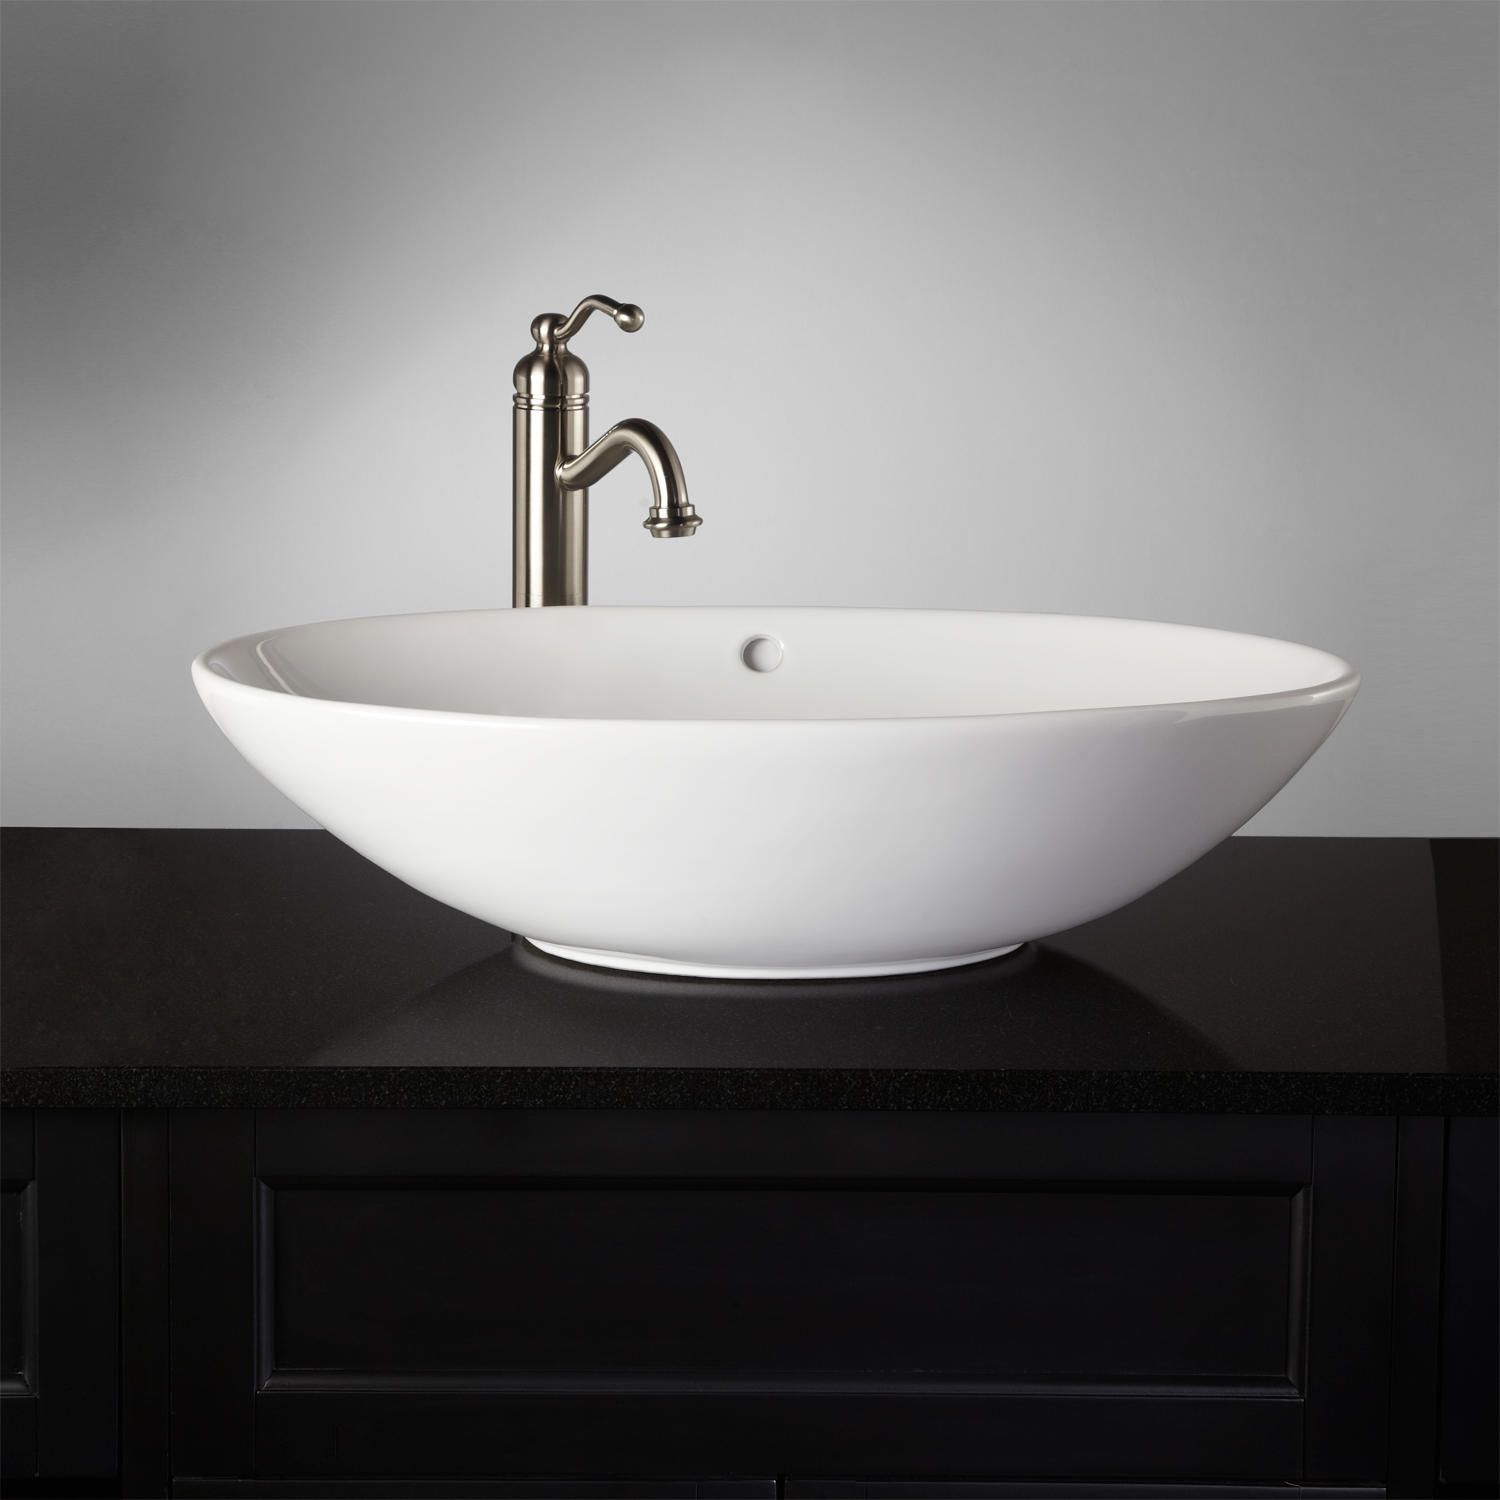 Phelan Porcelain Vessel Sink White